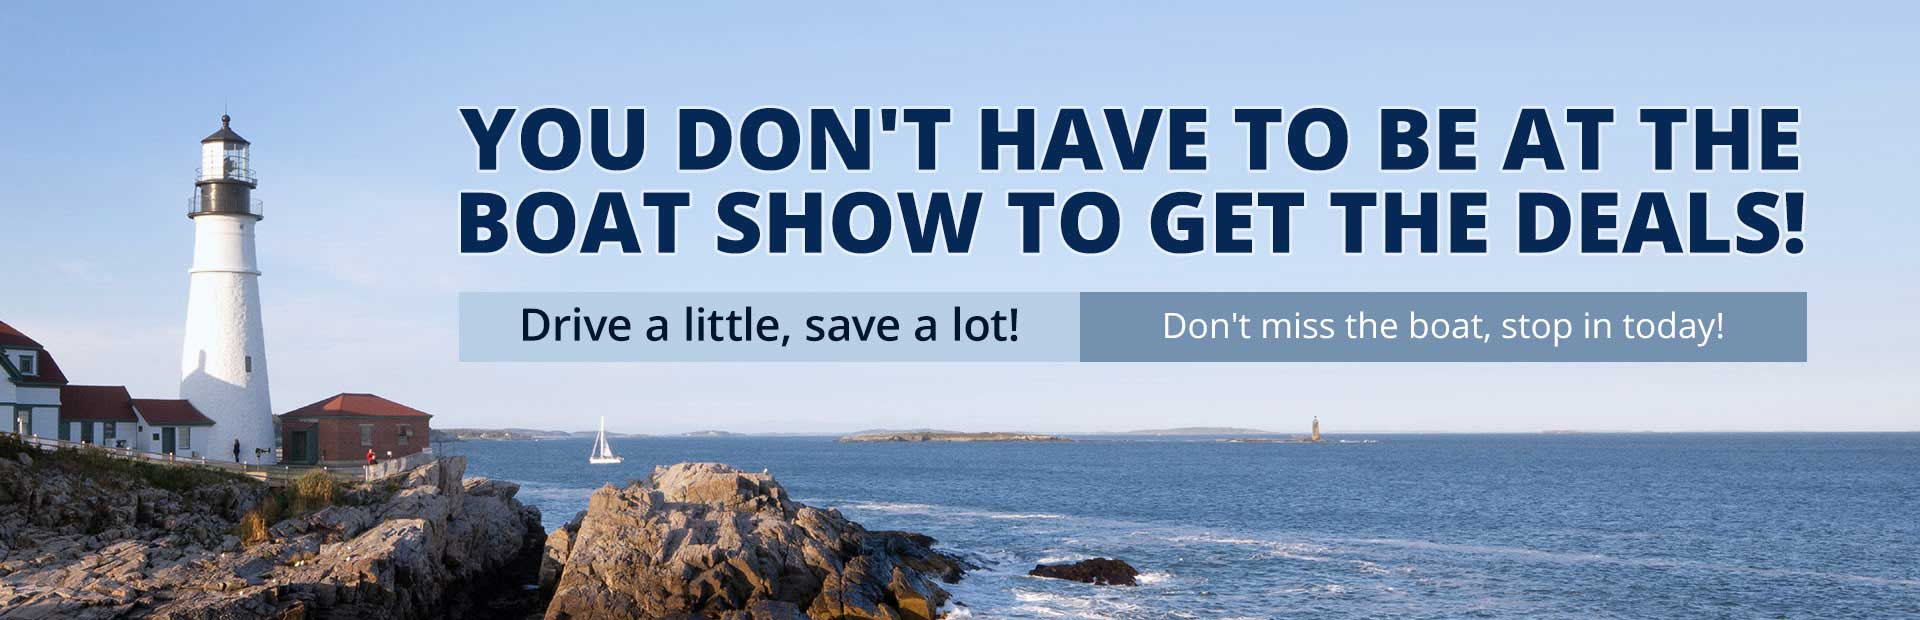 You don't have to be at the boat show to get the deals! Drive a little, save a lot! Don't miss the boat, stop in today!